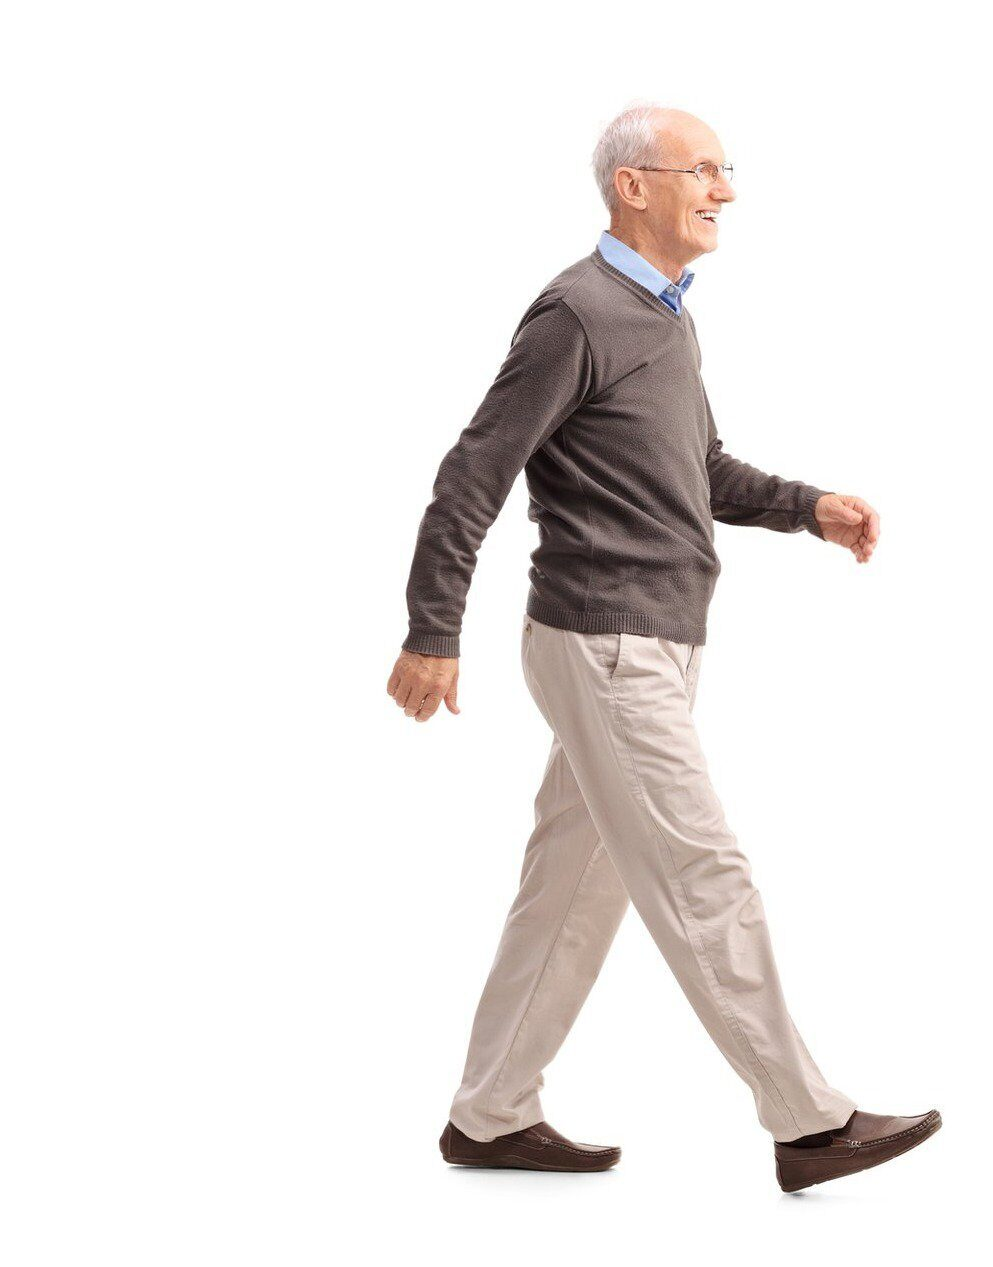 Casual senior man walking and smiling 2